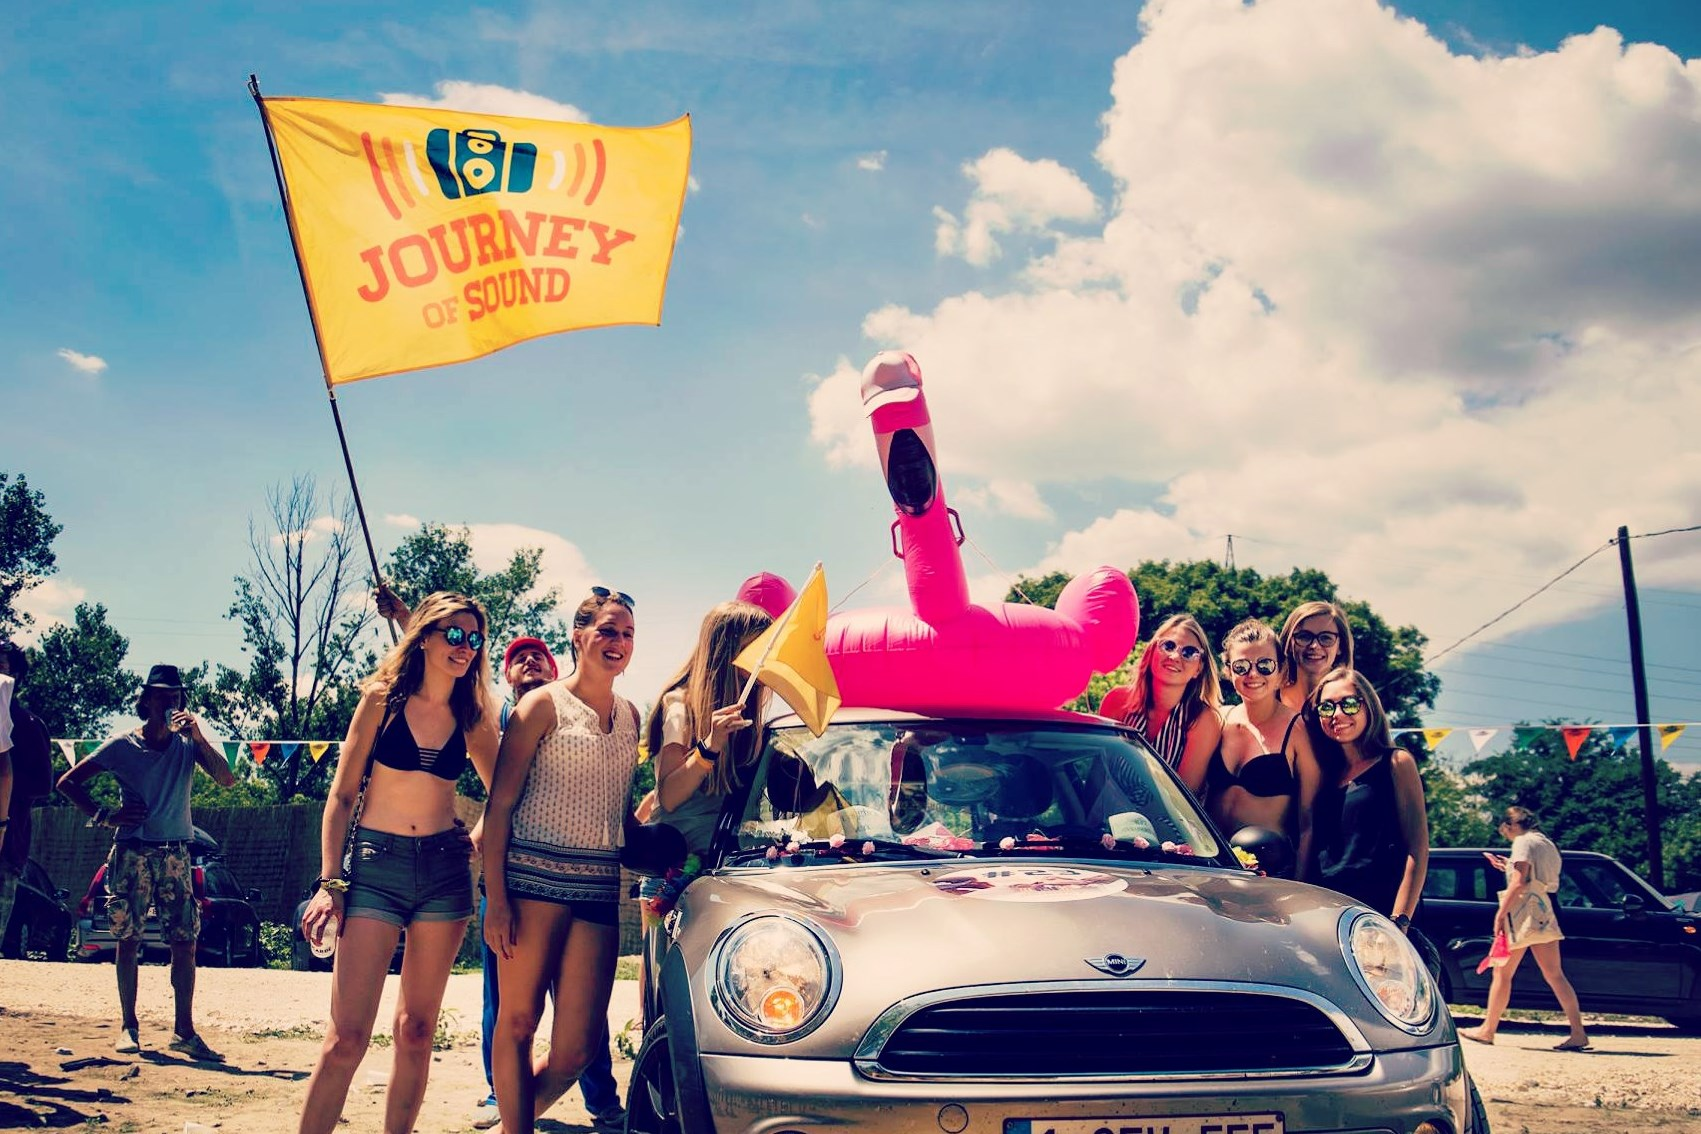 WIN JOURNEY OF SOUND TICKETS #win de road trip van je leven